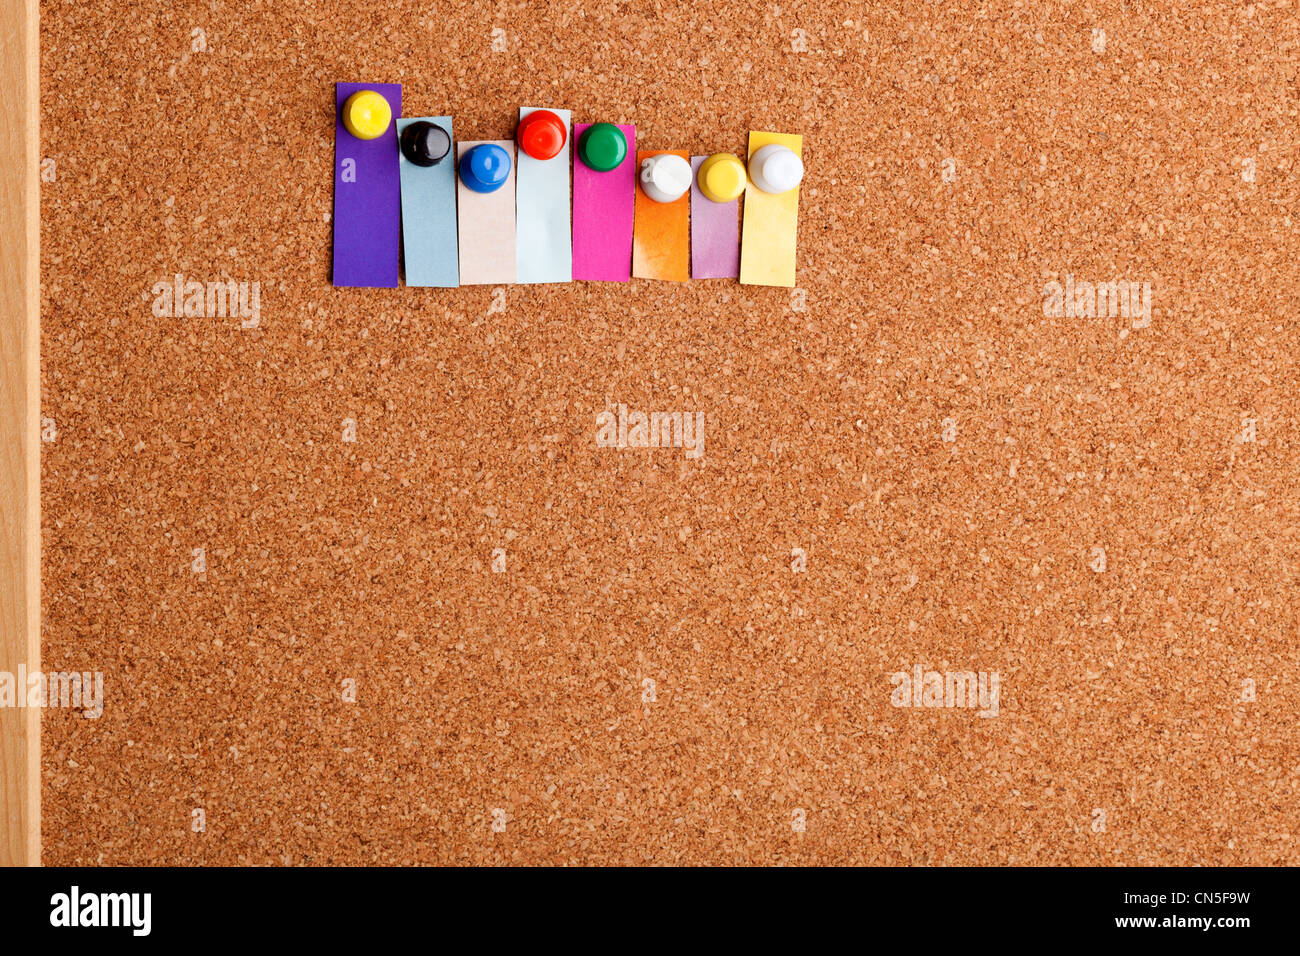 Cork board and colorful heading with copyspace for an eight letter word - Stock Image